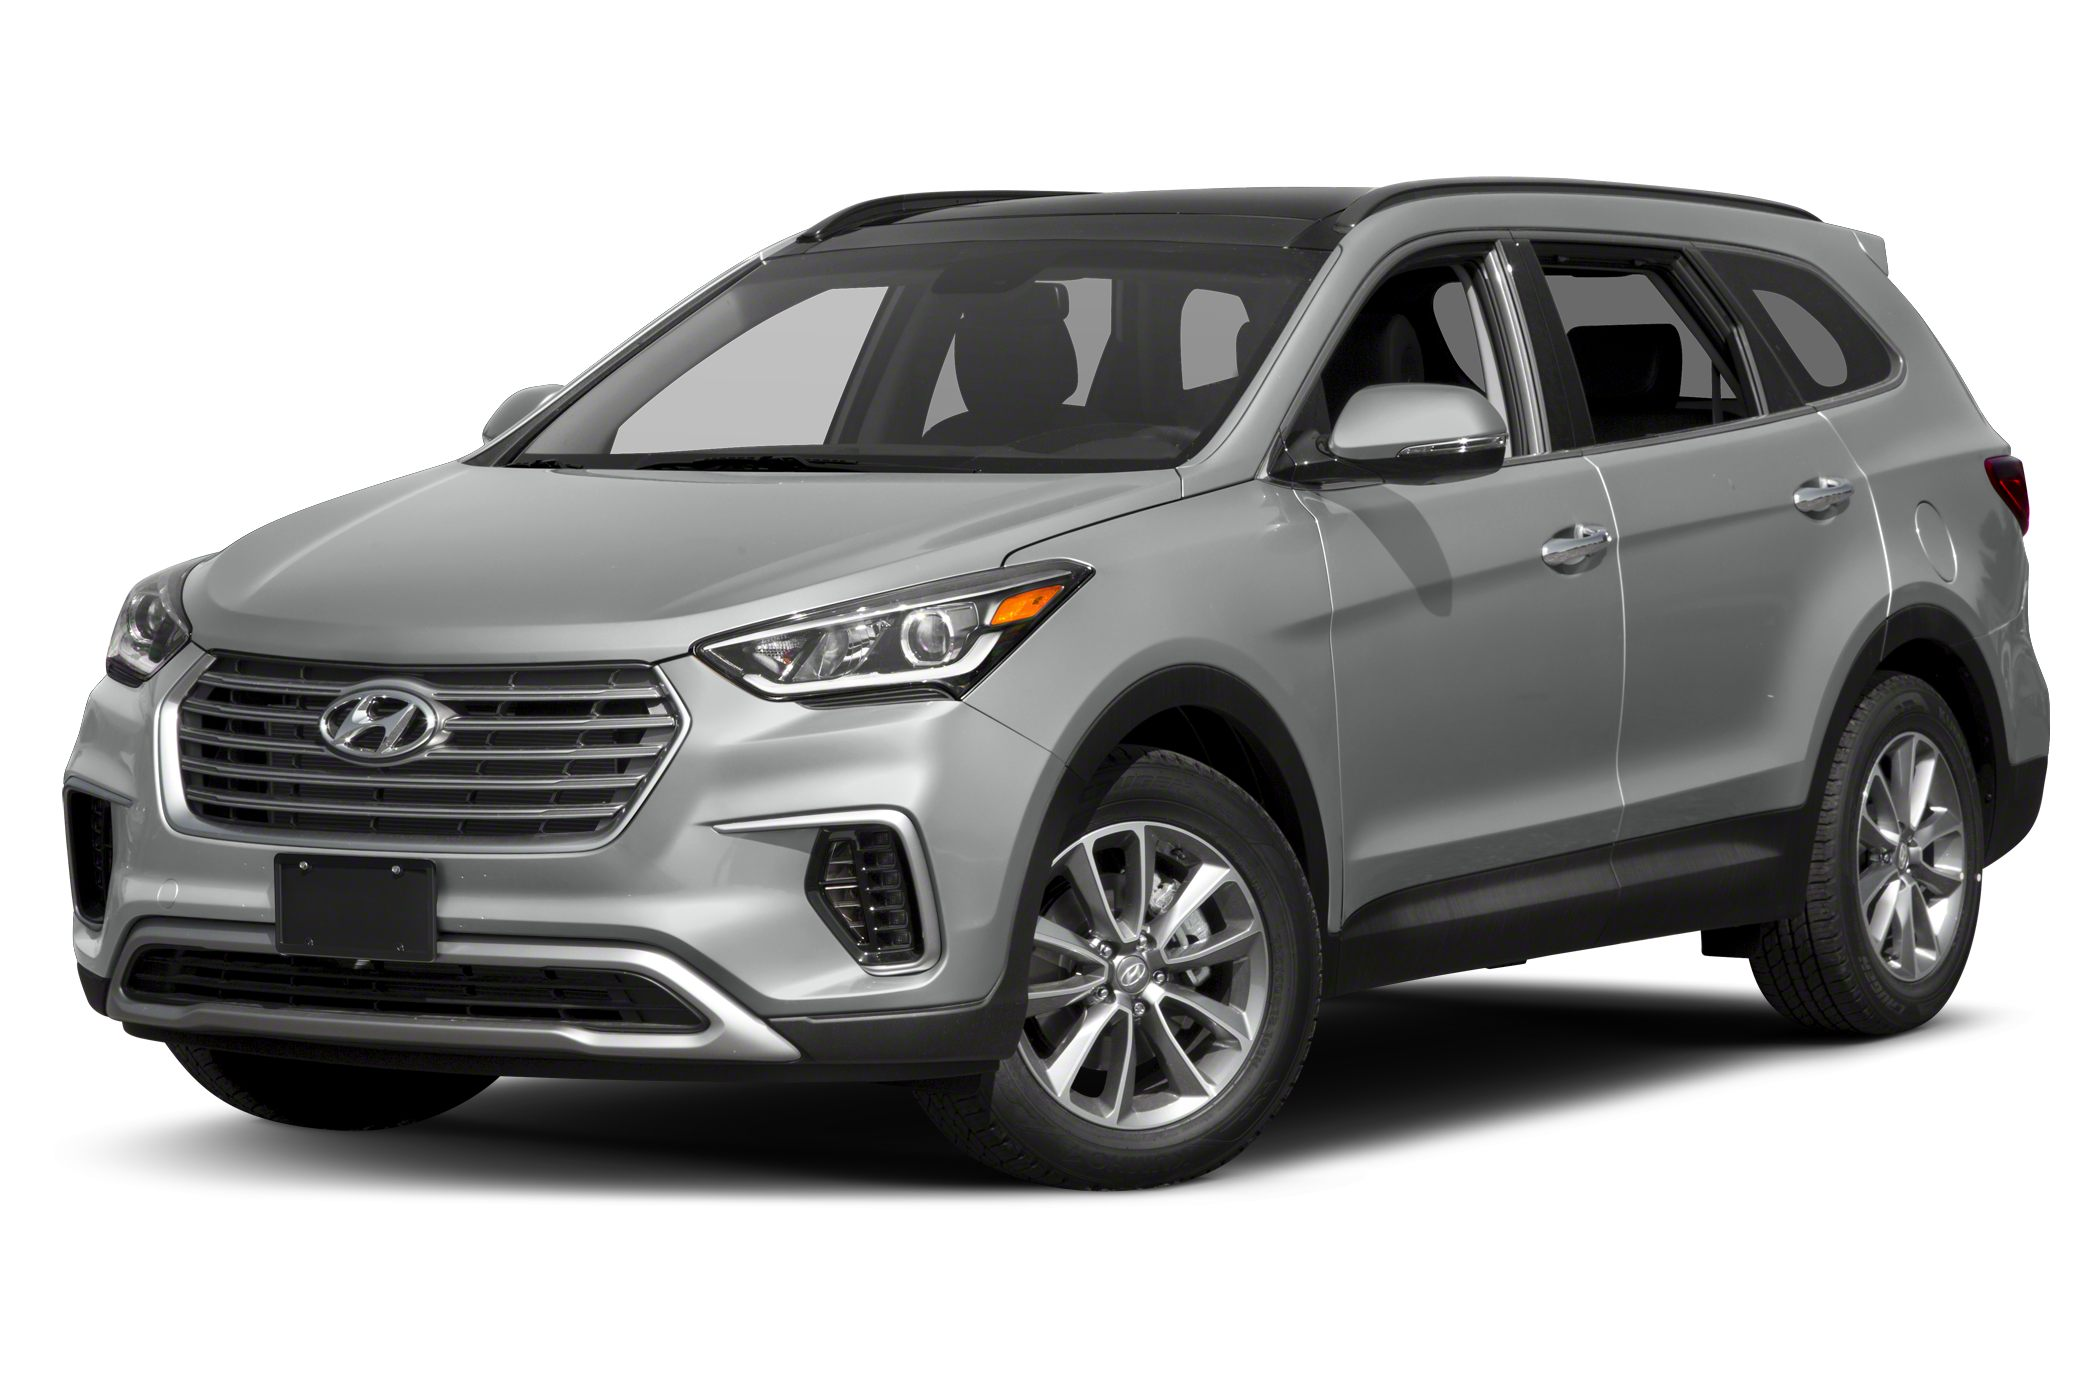 Hyundai Canada Incentives for the new 2017 Hyundai Santa Fe XL SUV in Milton, Toronto, and the GTA